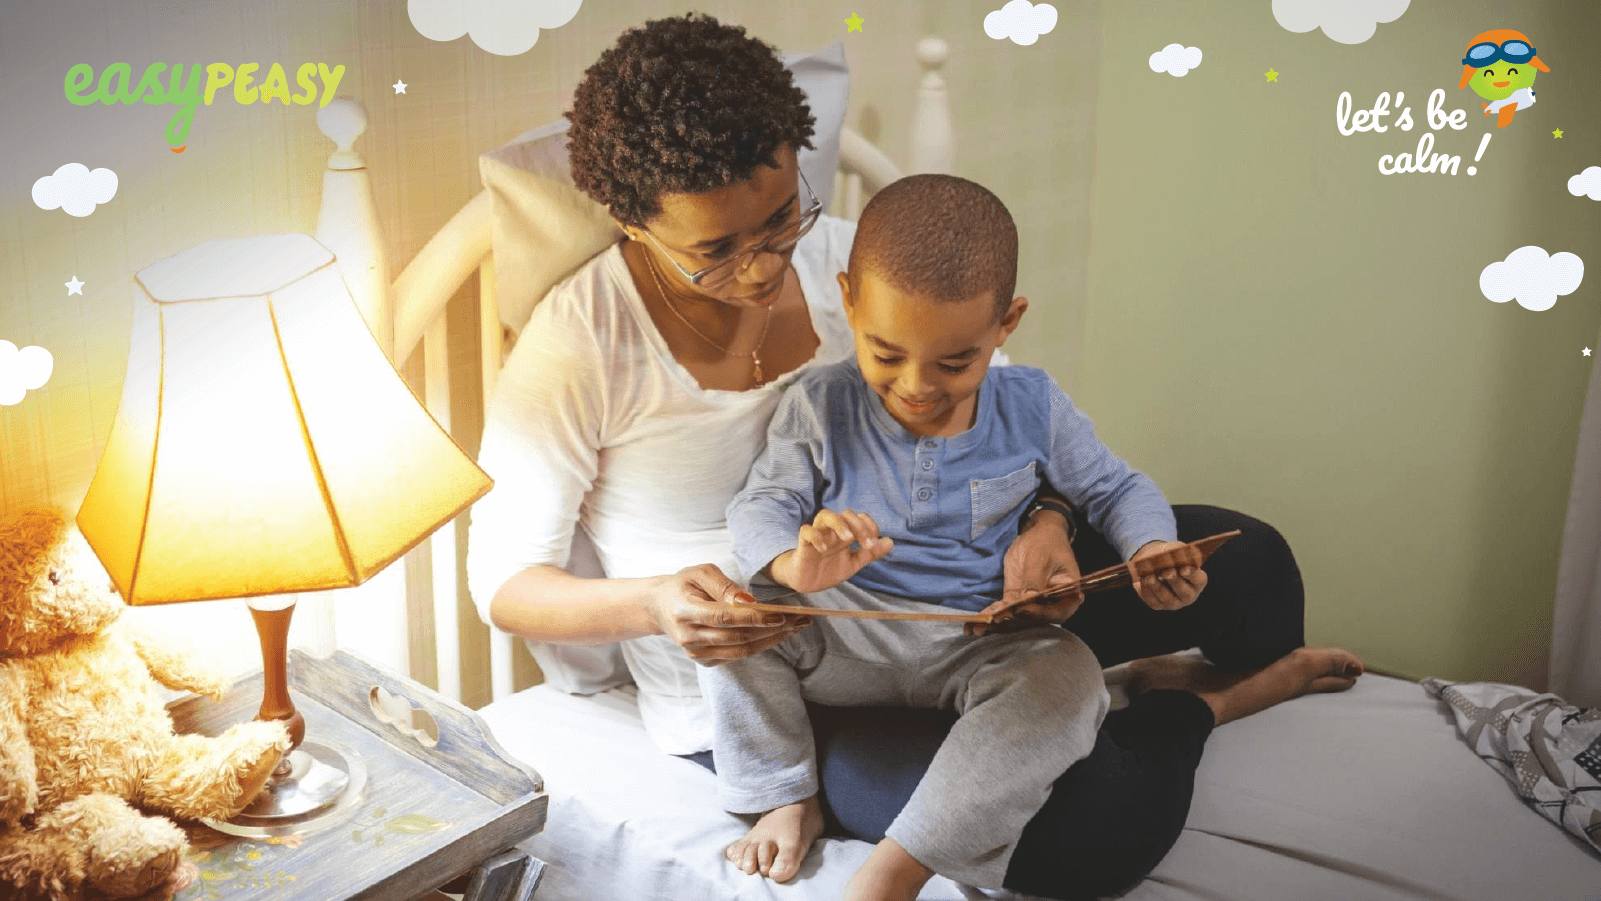 Bedtime featured image calmer bedtimes with toddler